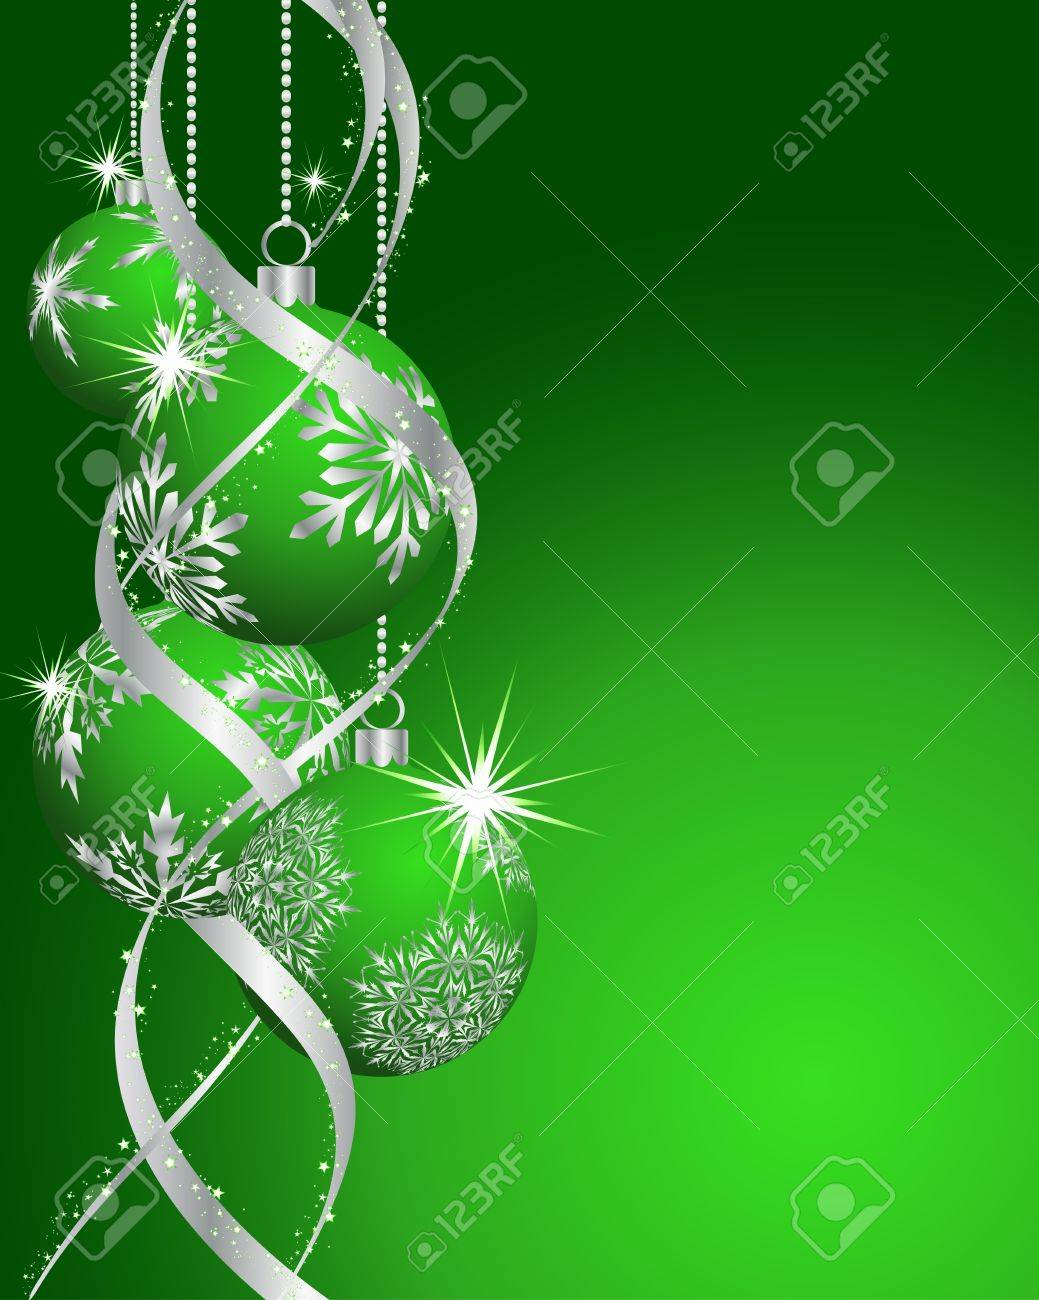 Beautiful vector christmas new year background for design use - Beautiful Christmas New Year Card For Design Use Stock Vector 11601566